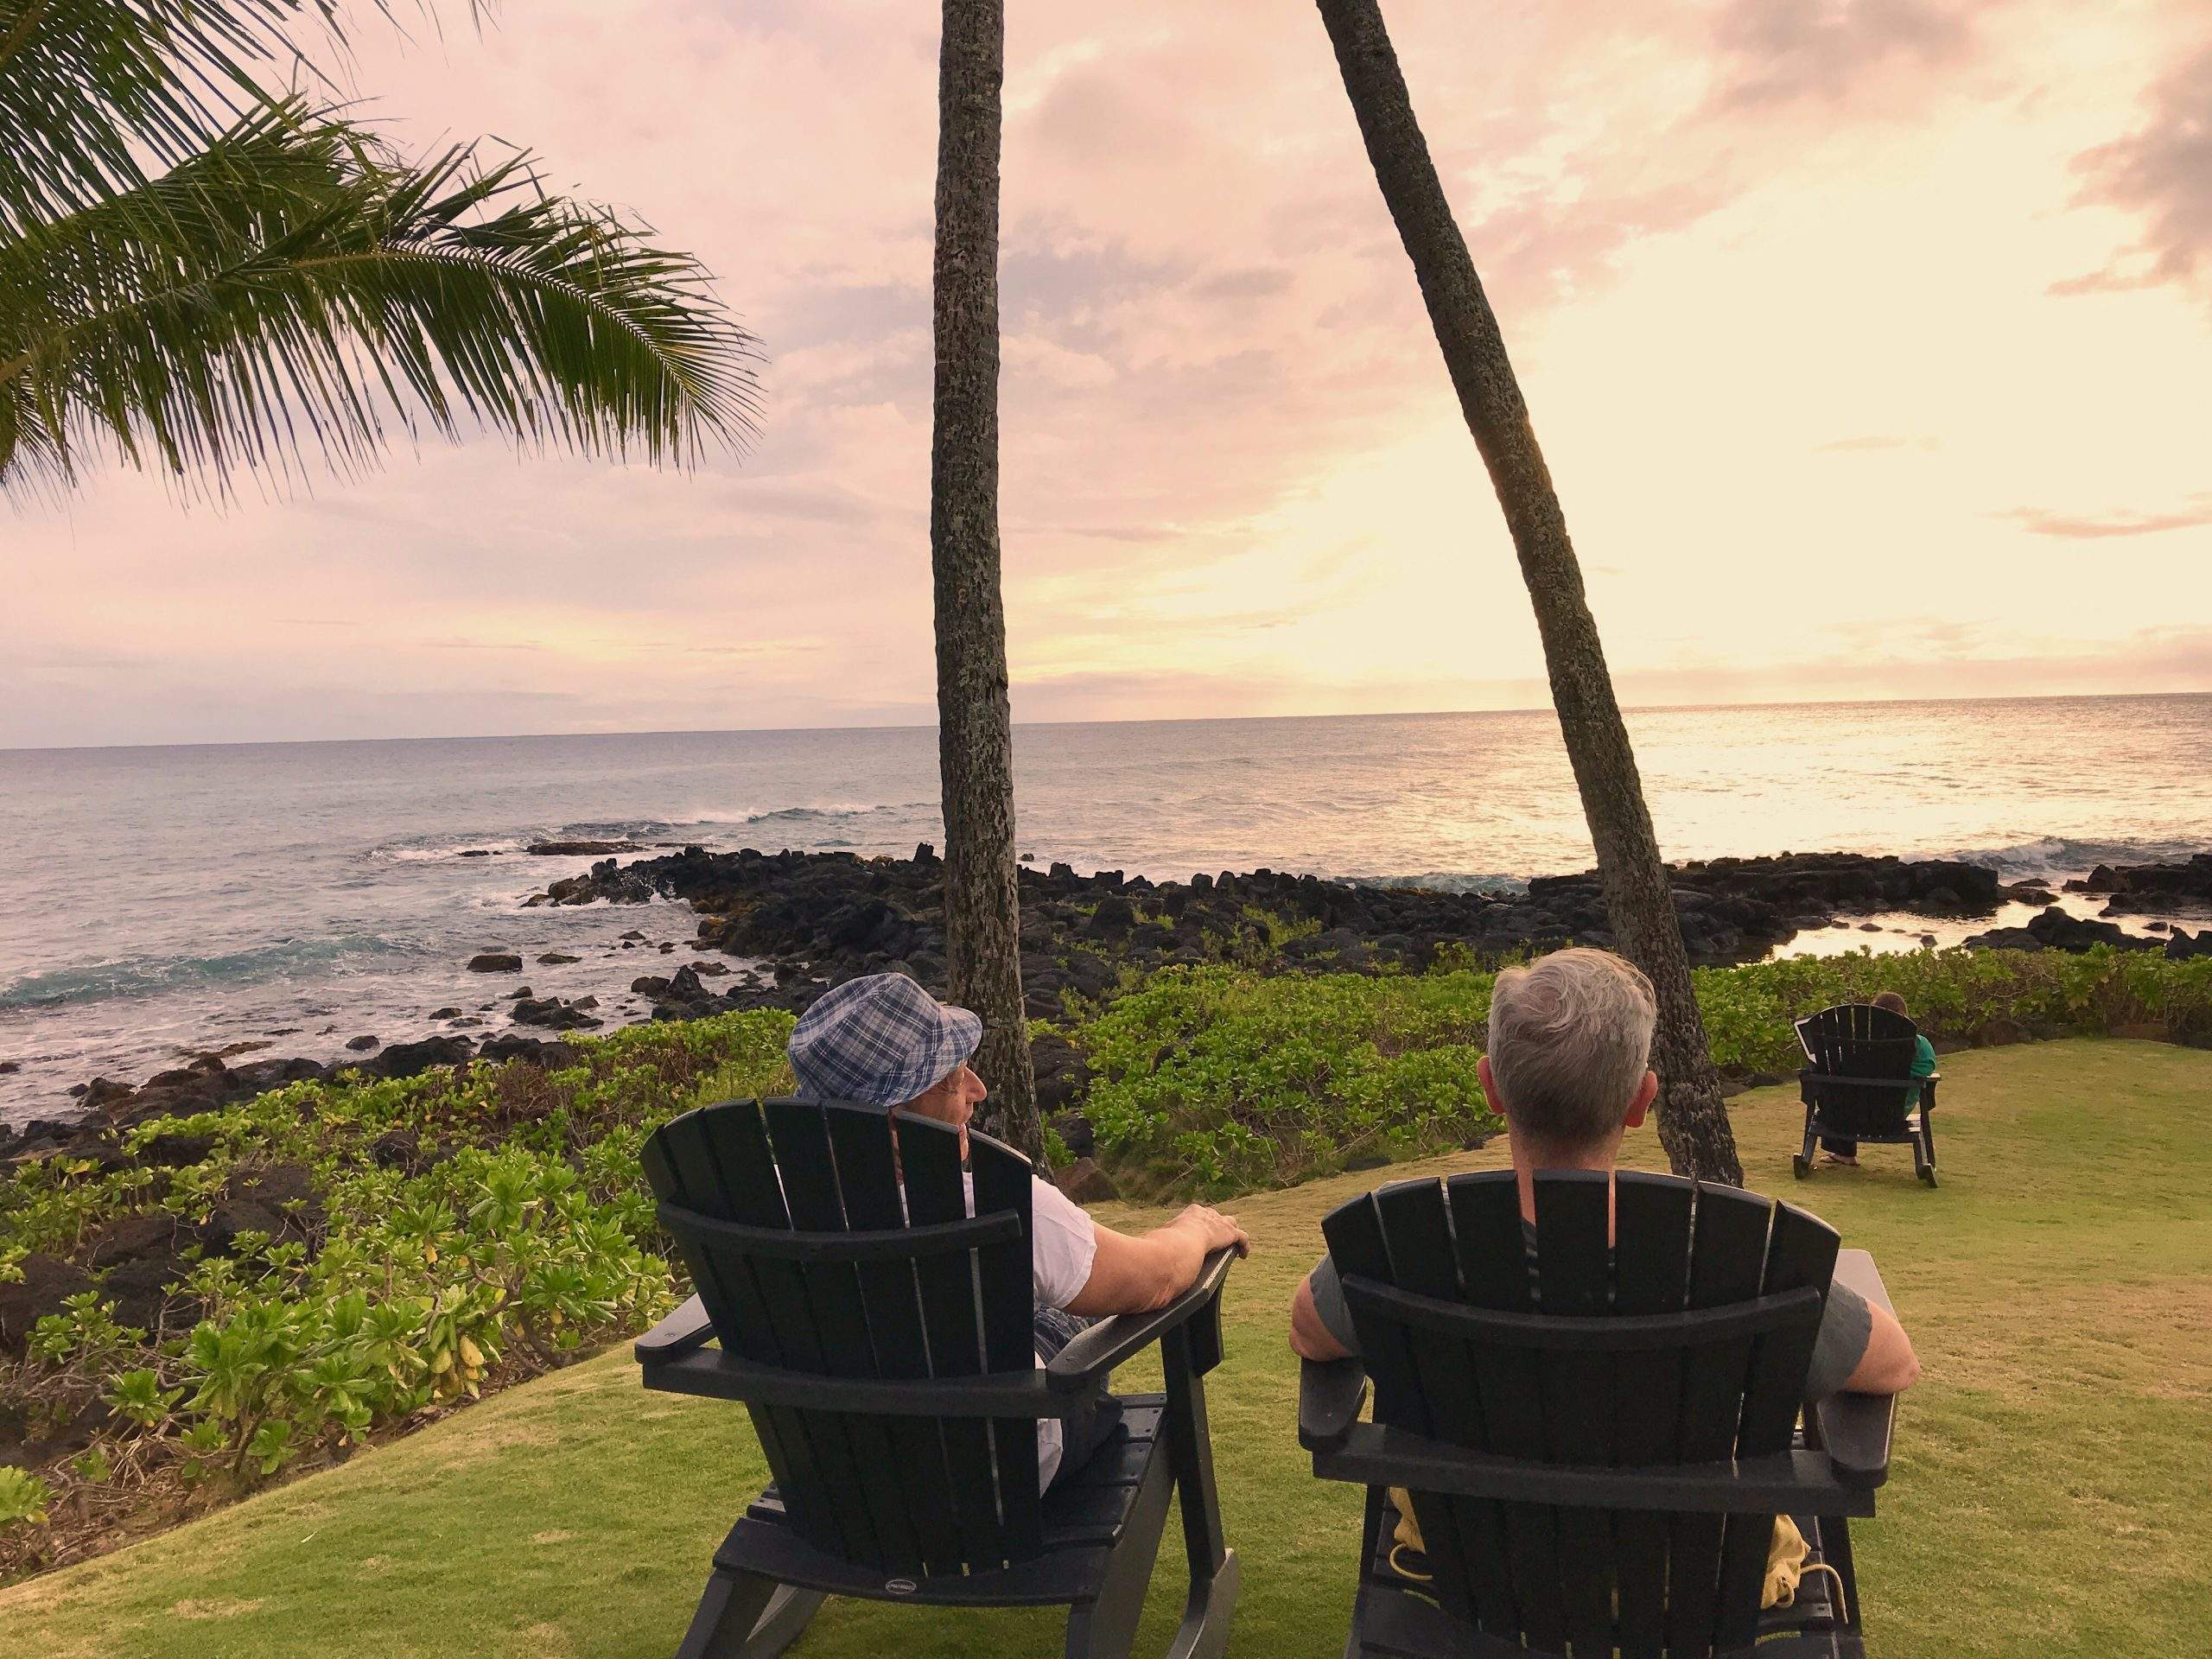 Gay male couple enjoys the sunset in lounge chairs overlooking the ocean in Poipu, Kauai, Hawaii